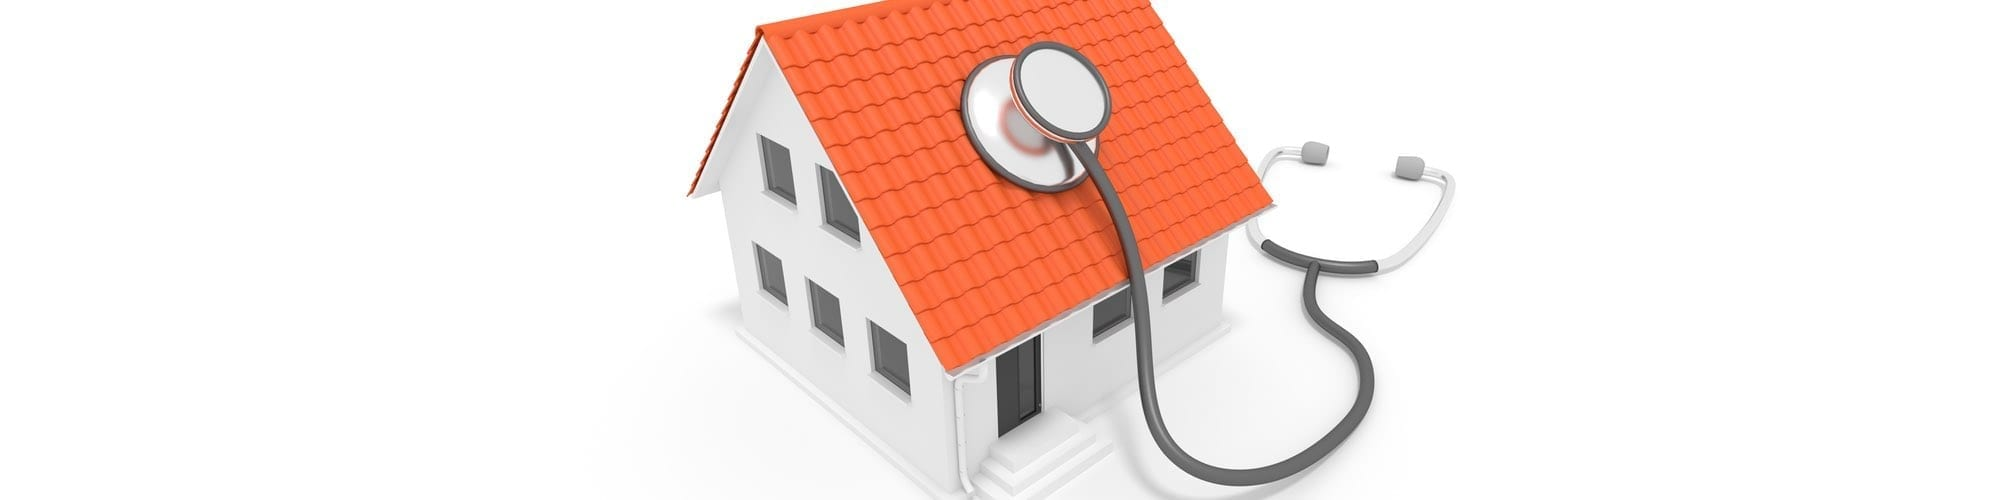 Building with stethoscope